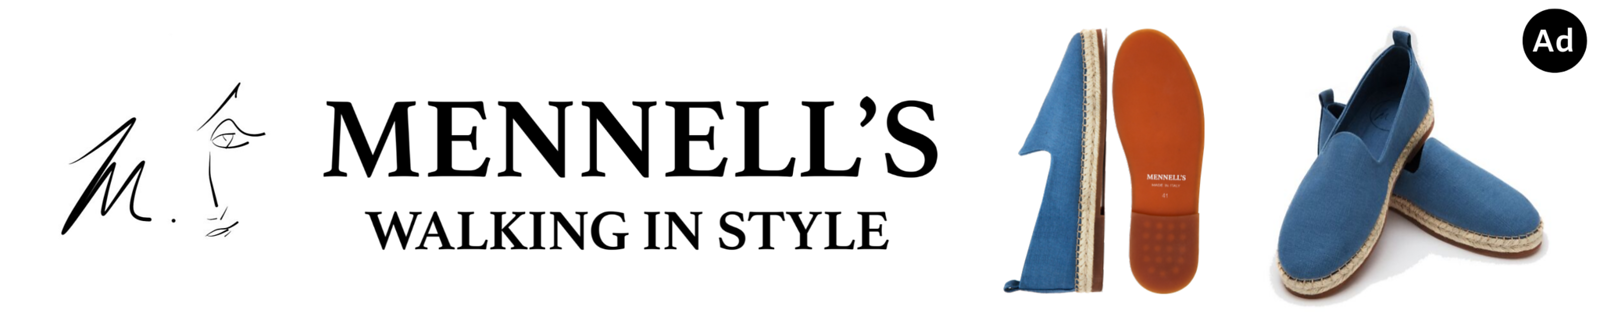 Mennell's Espadrilles Shoes Made in Italy Moving in Style for Celebrity WotNot